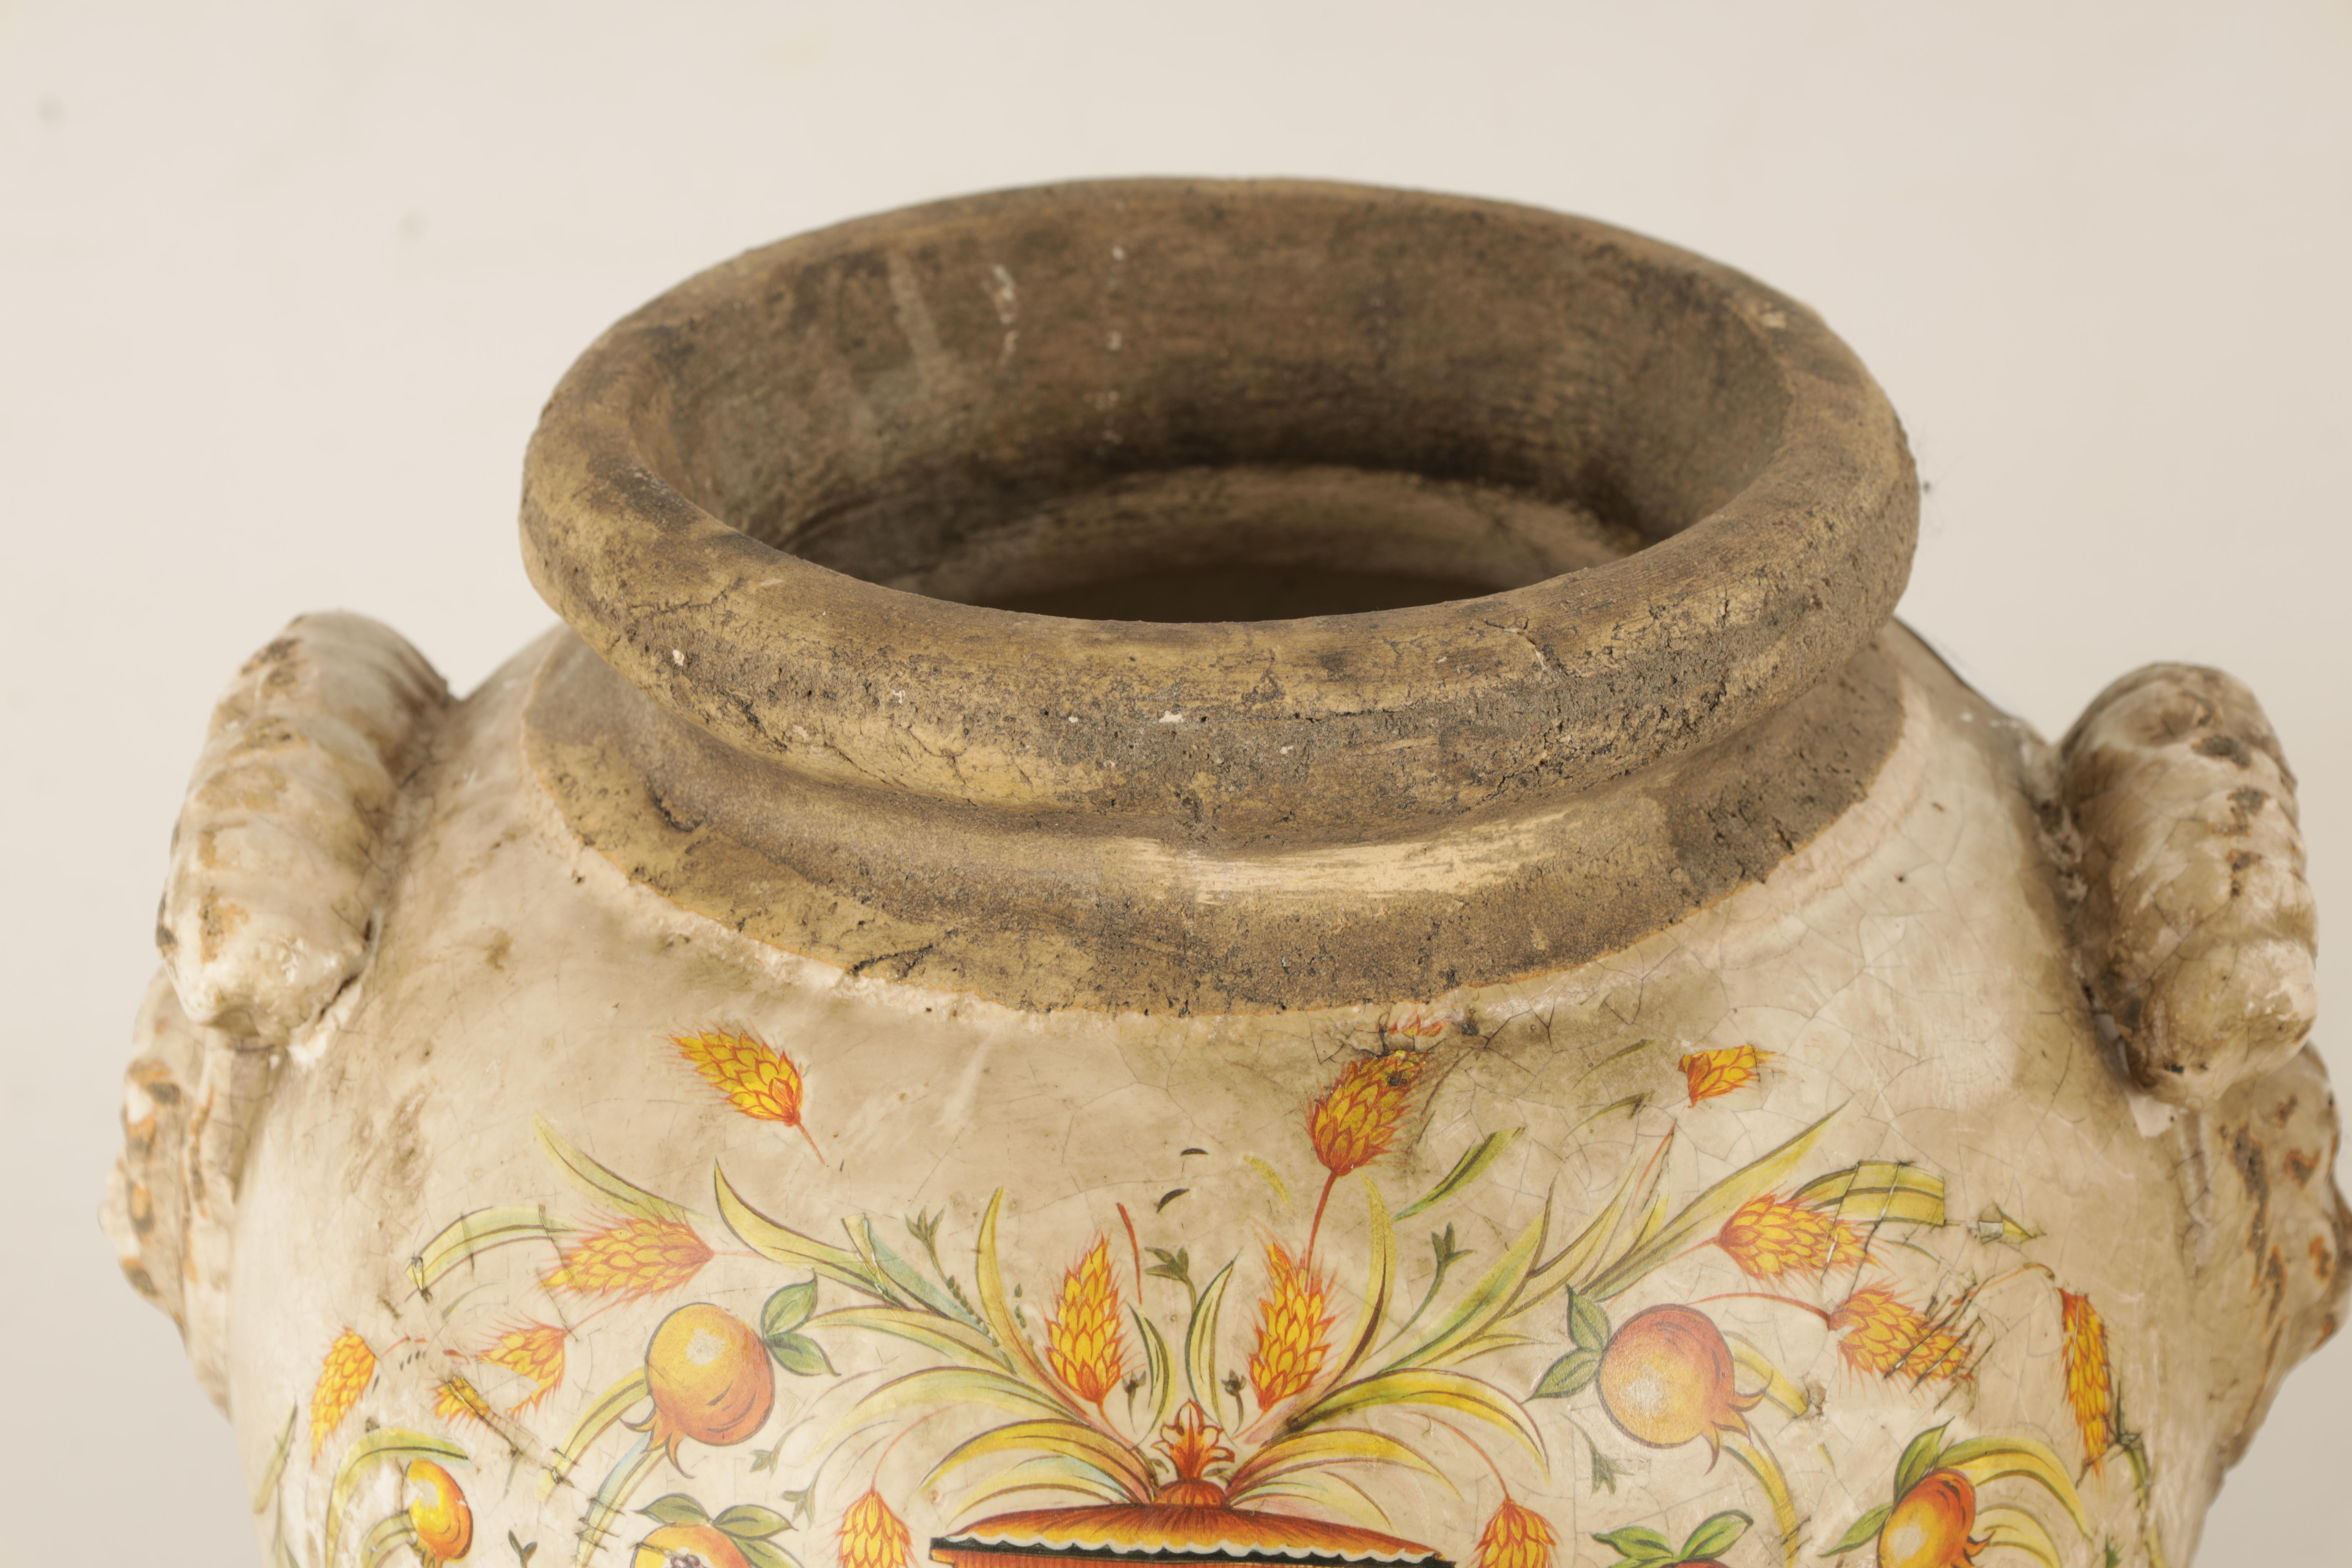 A PAIR OF EARLY ITALIAN EARTHENWARE ARMORIAL VASES with lion mask handles and painted armorials - Image 5 of 8